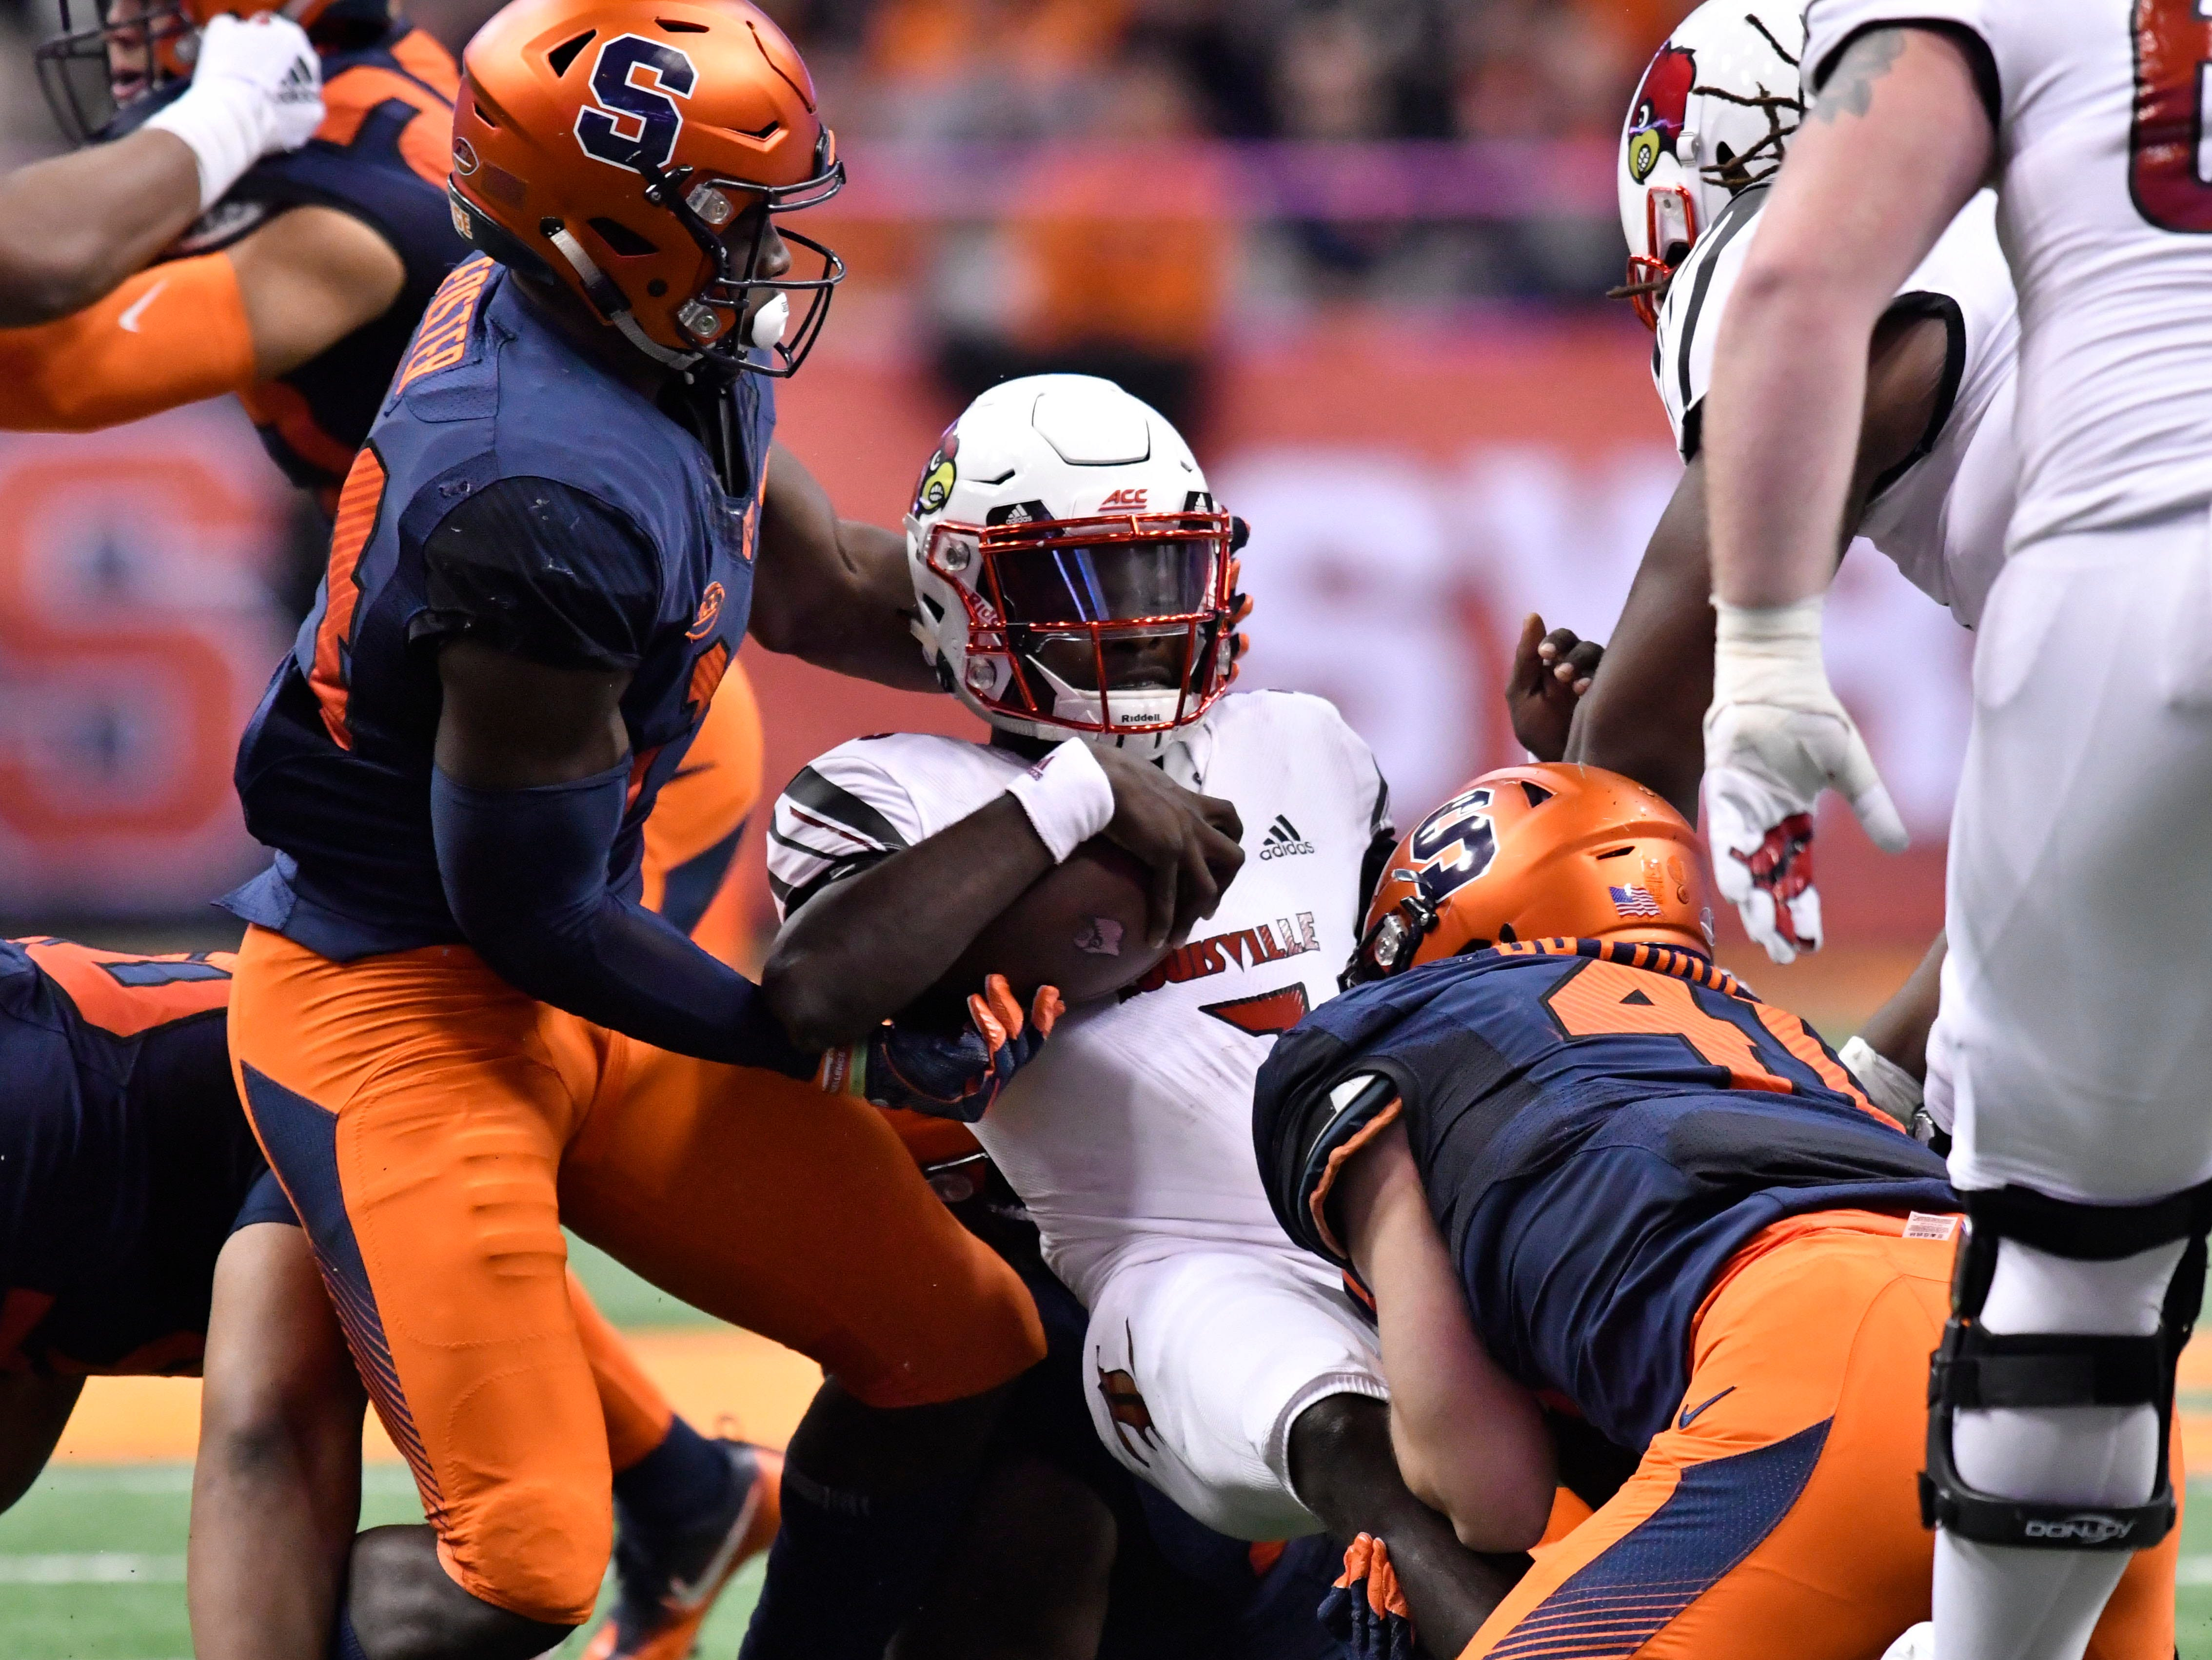 Louisville Cardinals quarterback Malik Cunningham (3) is tackled by Syracuse Orange linebacker Ryan Guthrie (41) and defensive back Evan Foster (14) during the second quarter at the Carrier Dome.